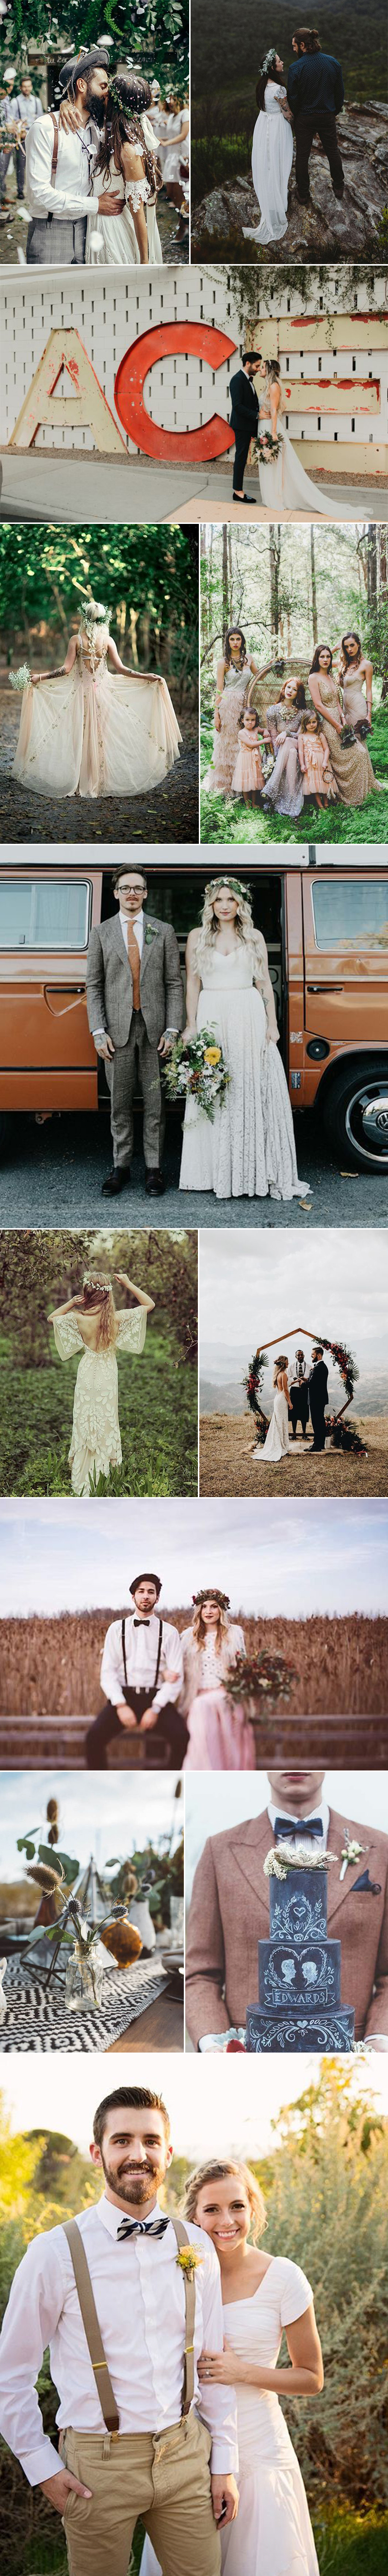 Hipster Wedding Inspiration